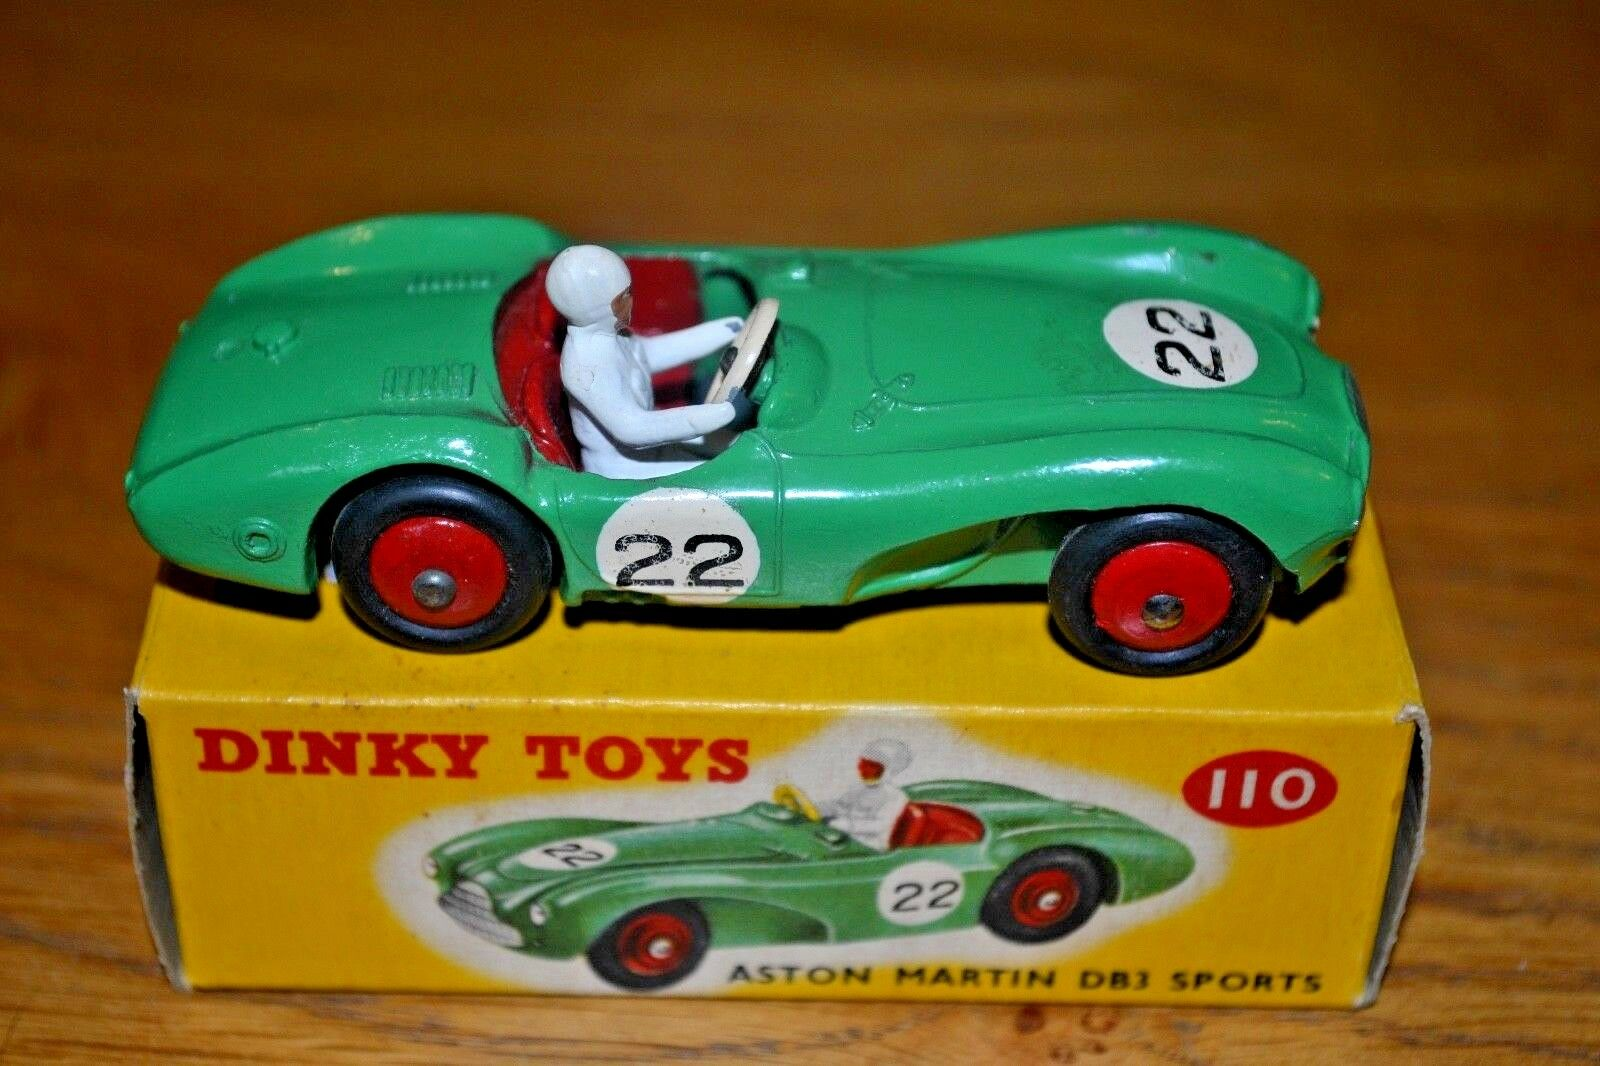 Dinky Toys No. 110 Aston Martin DB3 Sports Car; Original Correct Colour Box